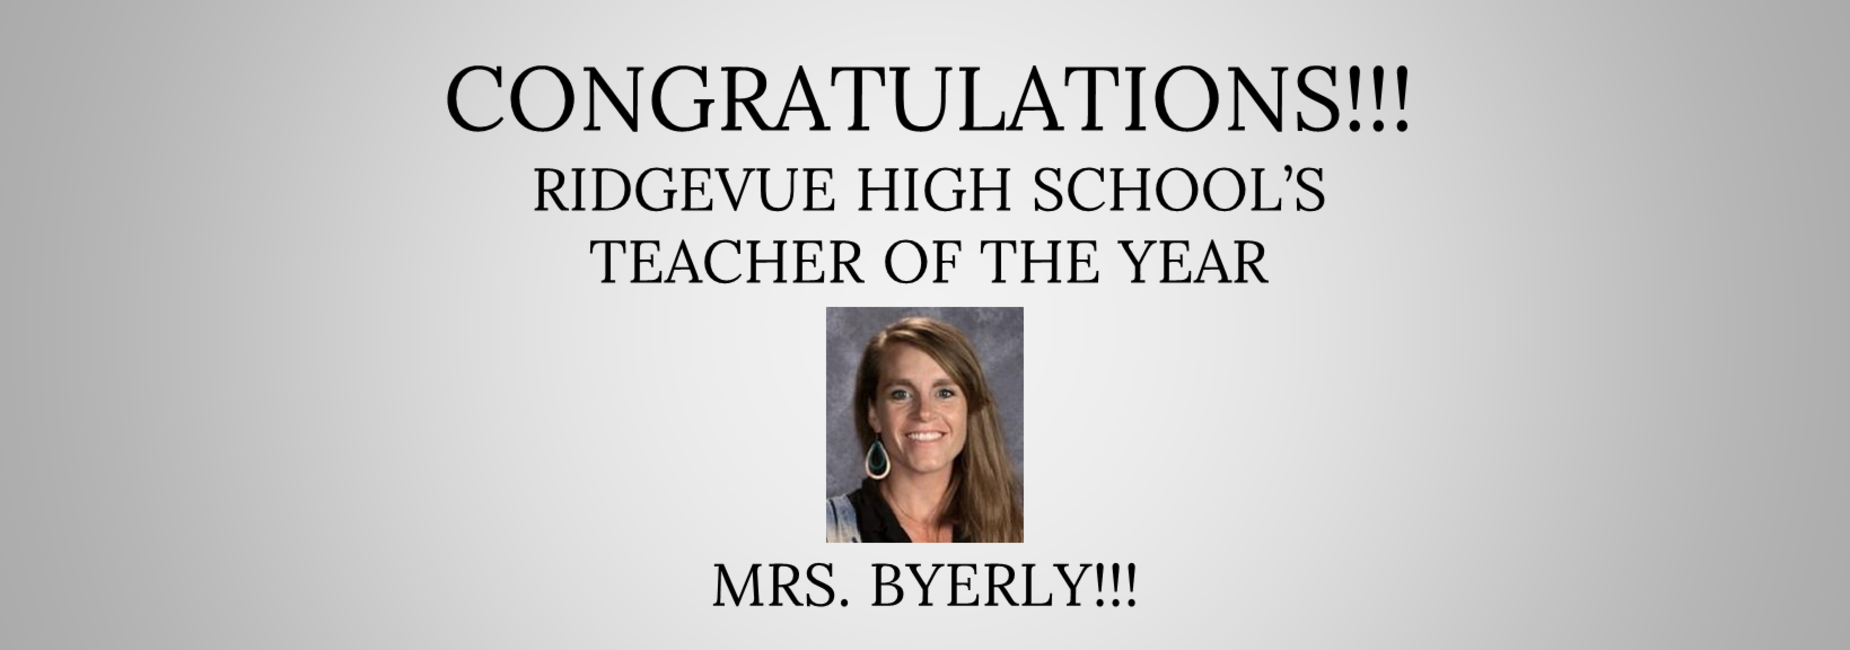 Teacher of the Year Tegan Byerly